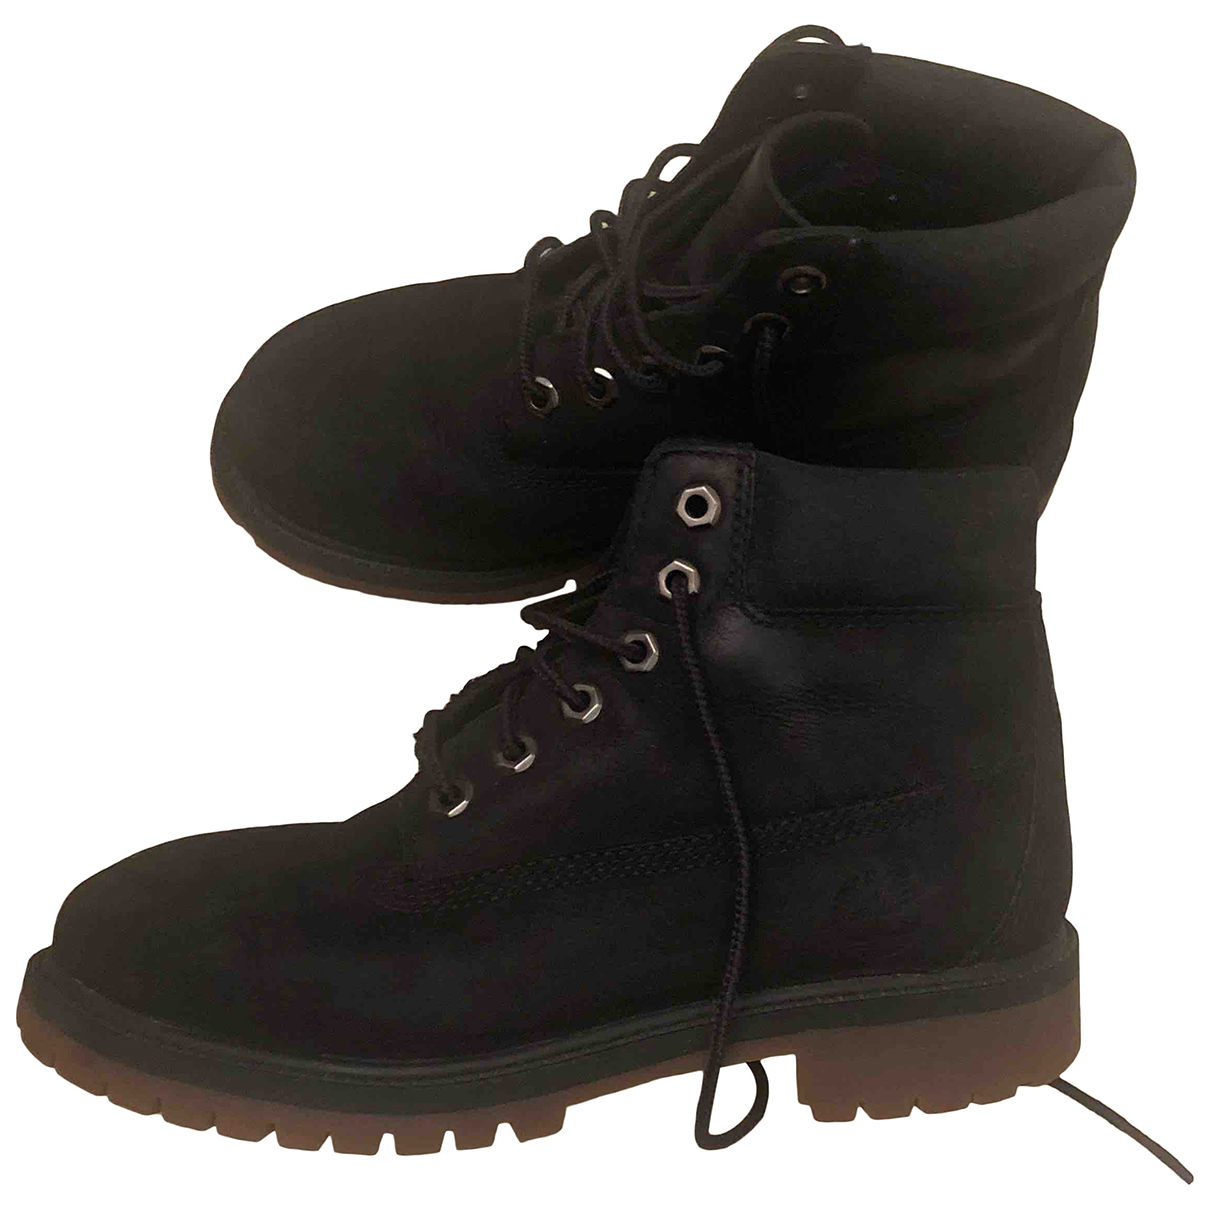 Timberland N Black Leather Boots for Kids 33 FR